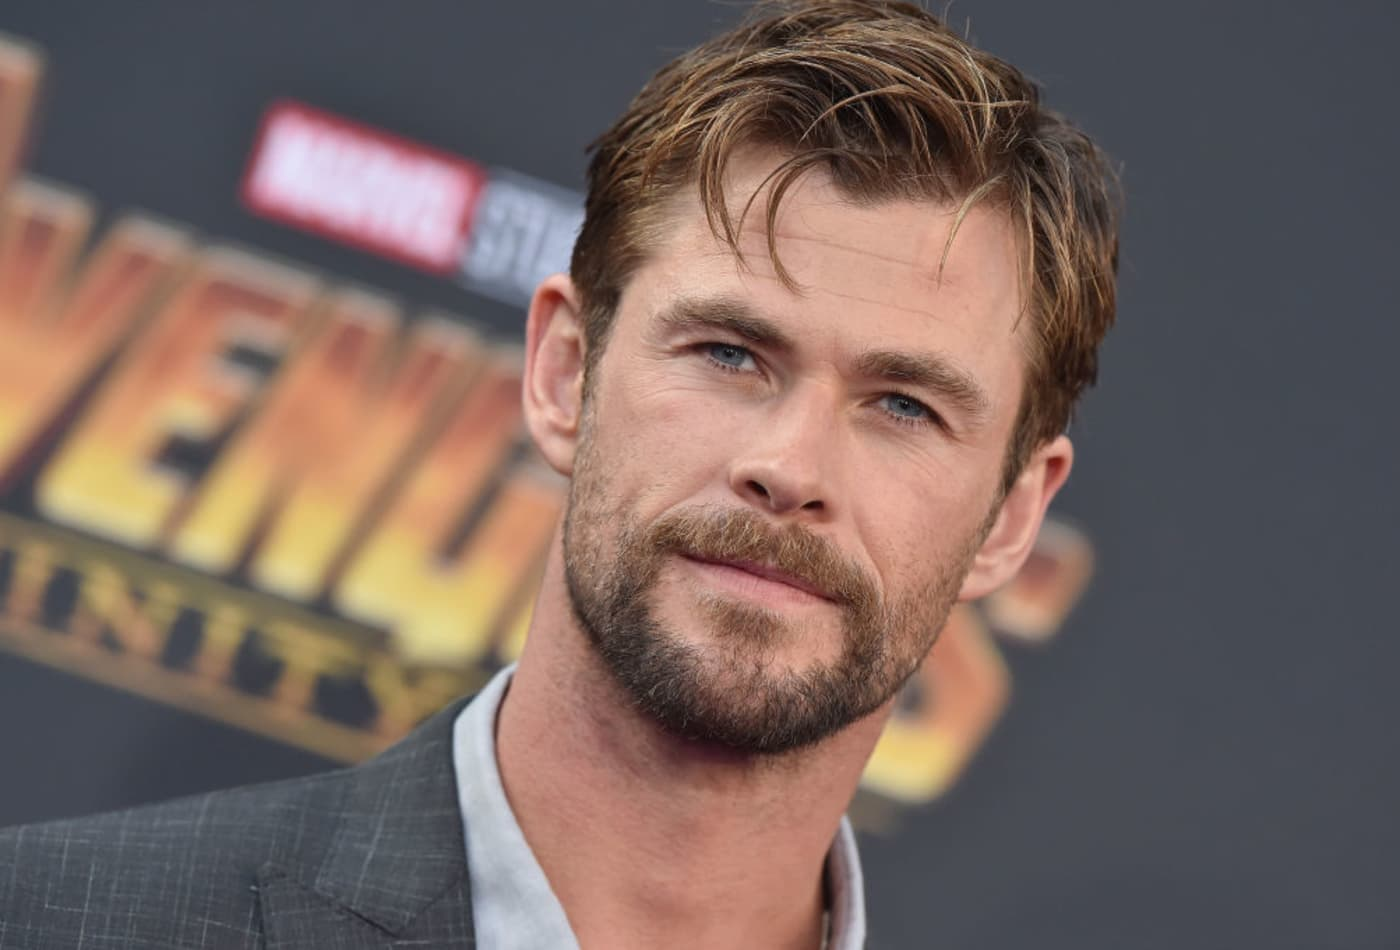 Avengers Star Chris Hemsworth On Striking A Work Life Balance